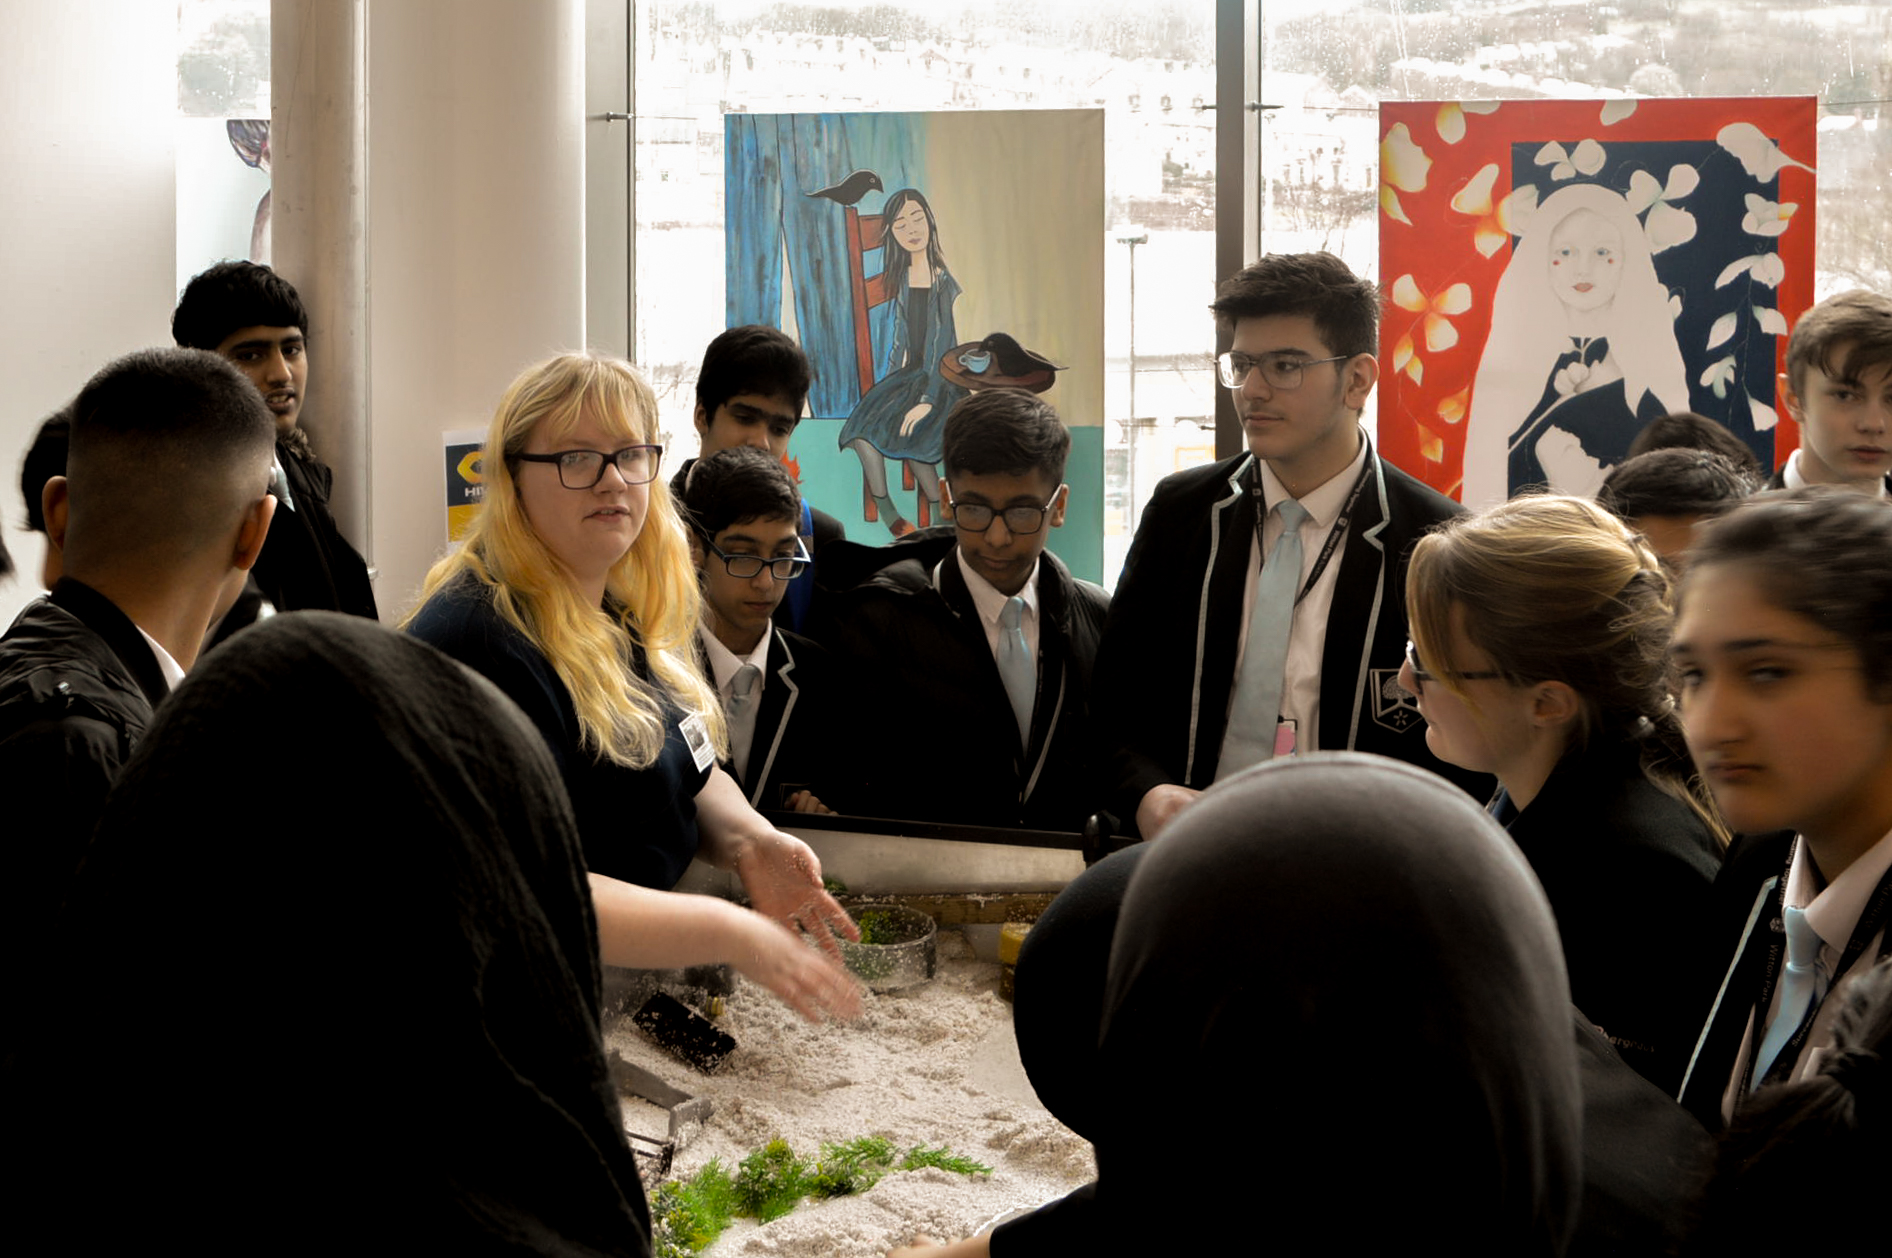 Year 9 pupils learning about their future careers